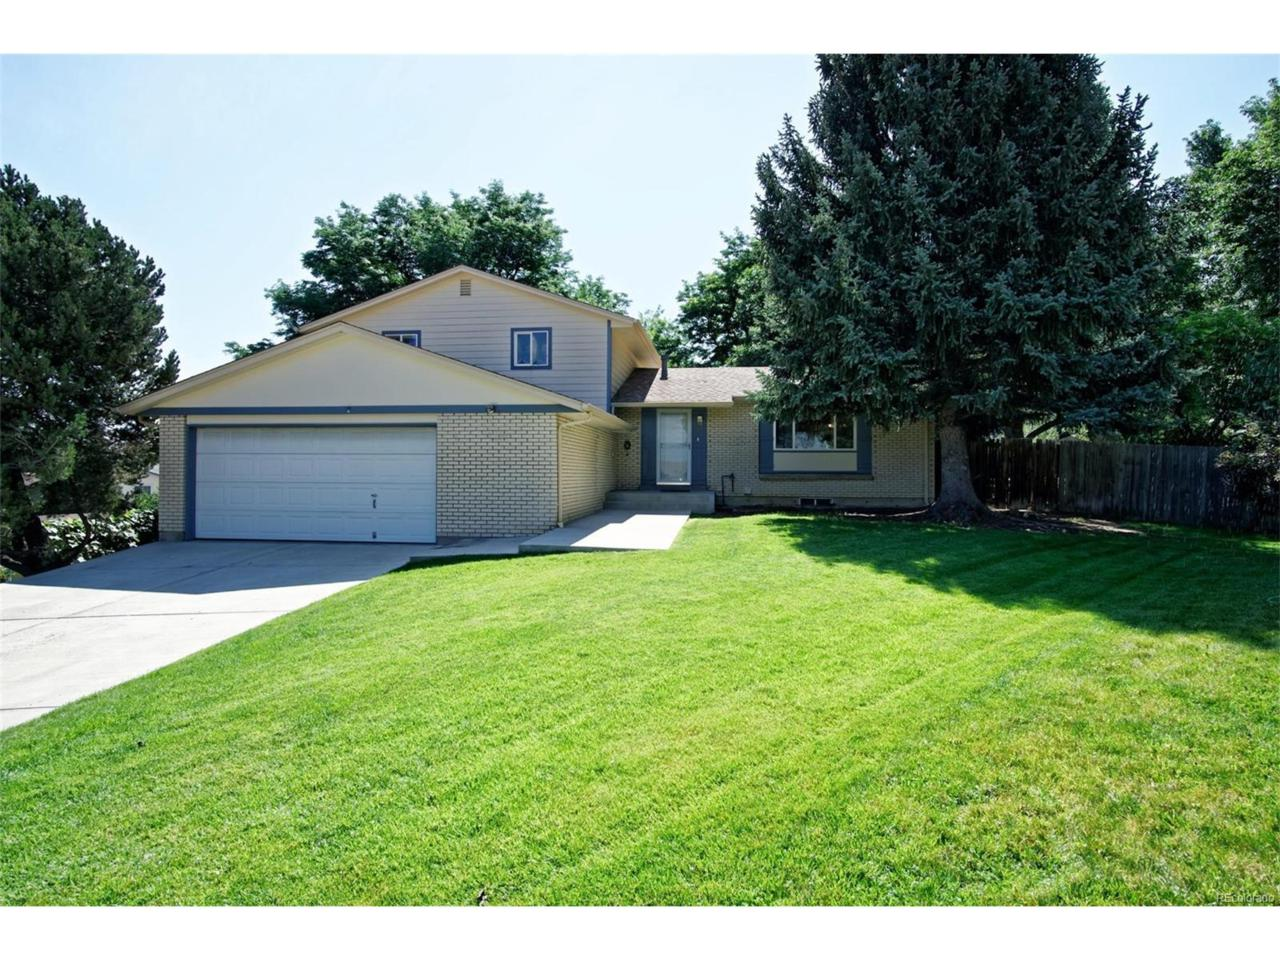 6762 Wright Court, Arvada, CO 80004 (MLS #9168130) :: 8z Real Estate